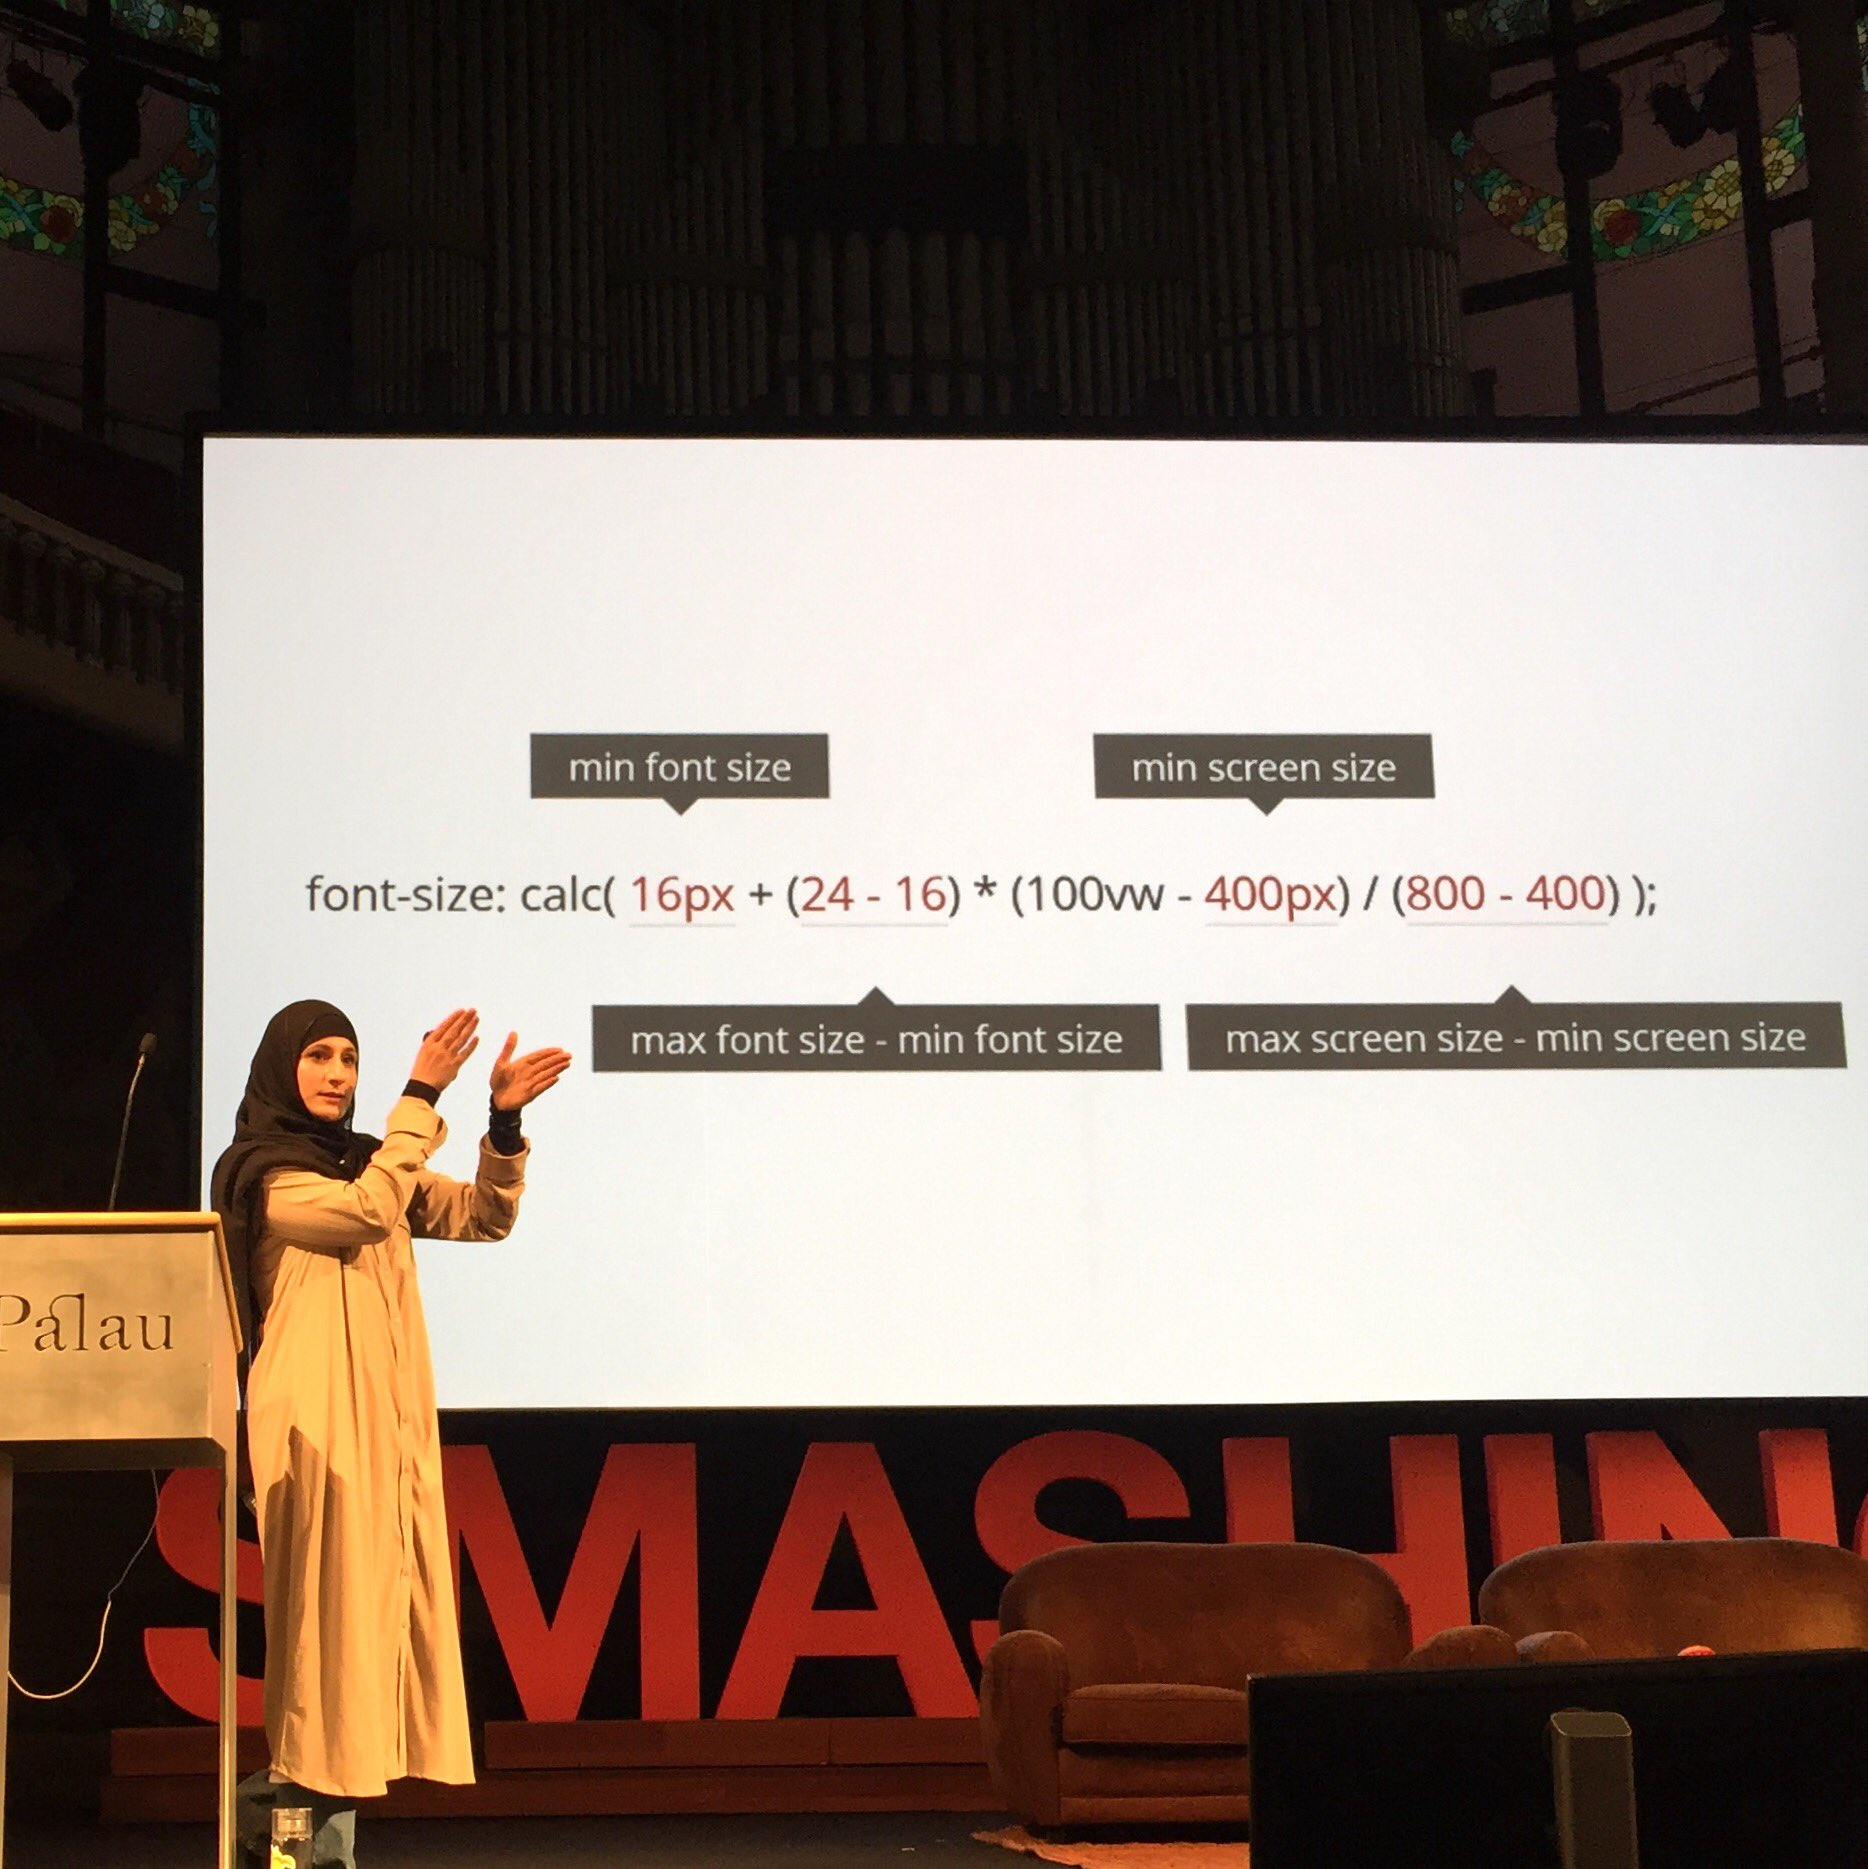 RT @nucliweb: Awesome talk by @SaraSoueidan at #smashingconf #LotOfTips #css #svg #a11y https://t.co/0ZrPDQ5i48